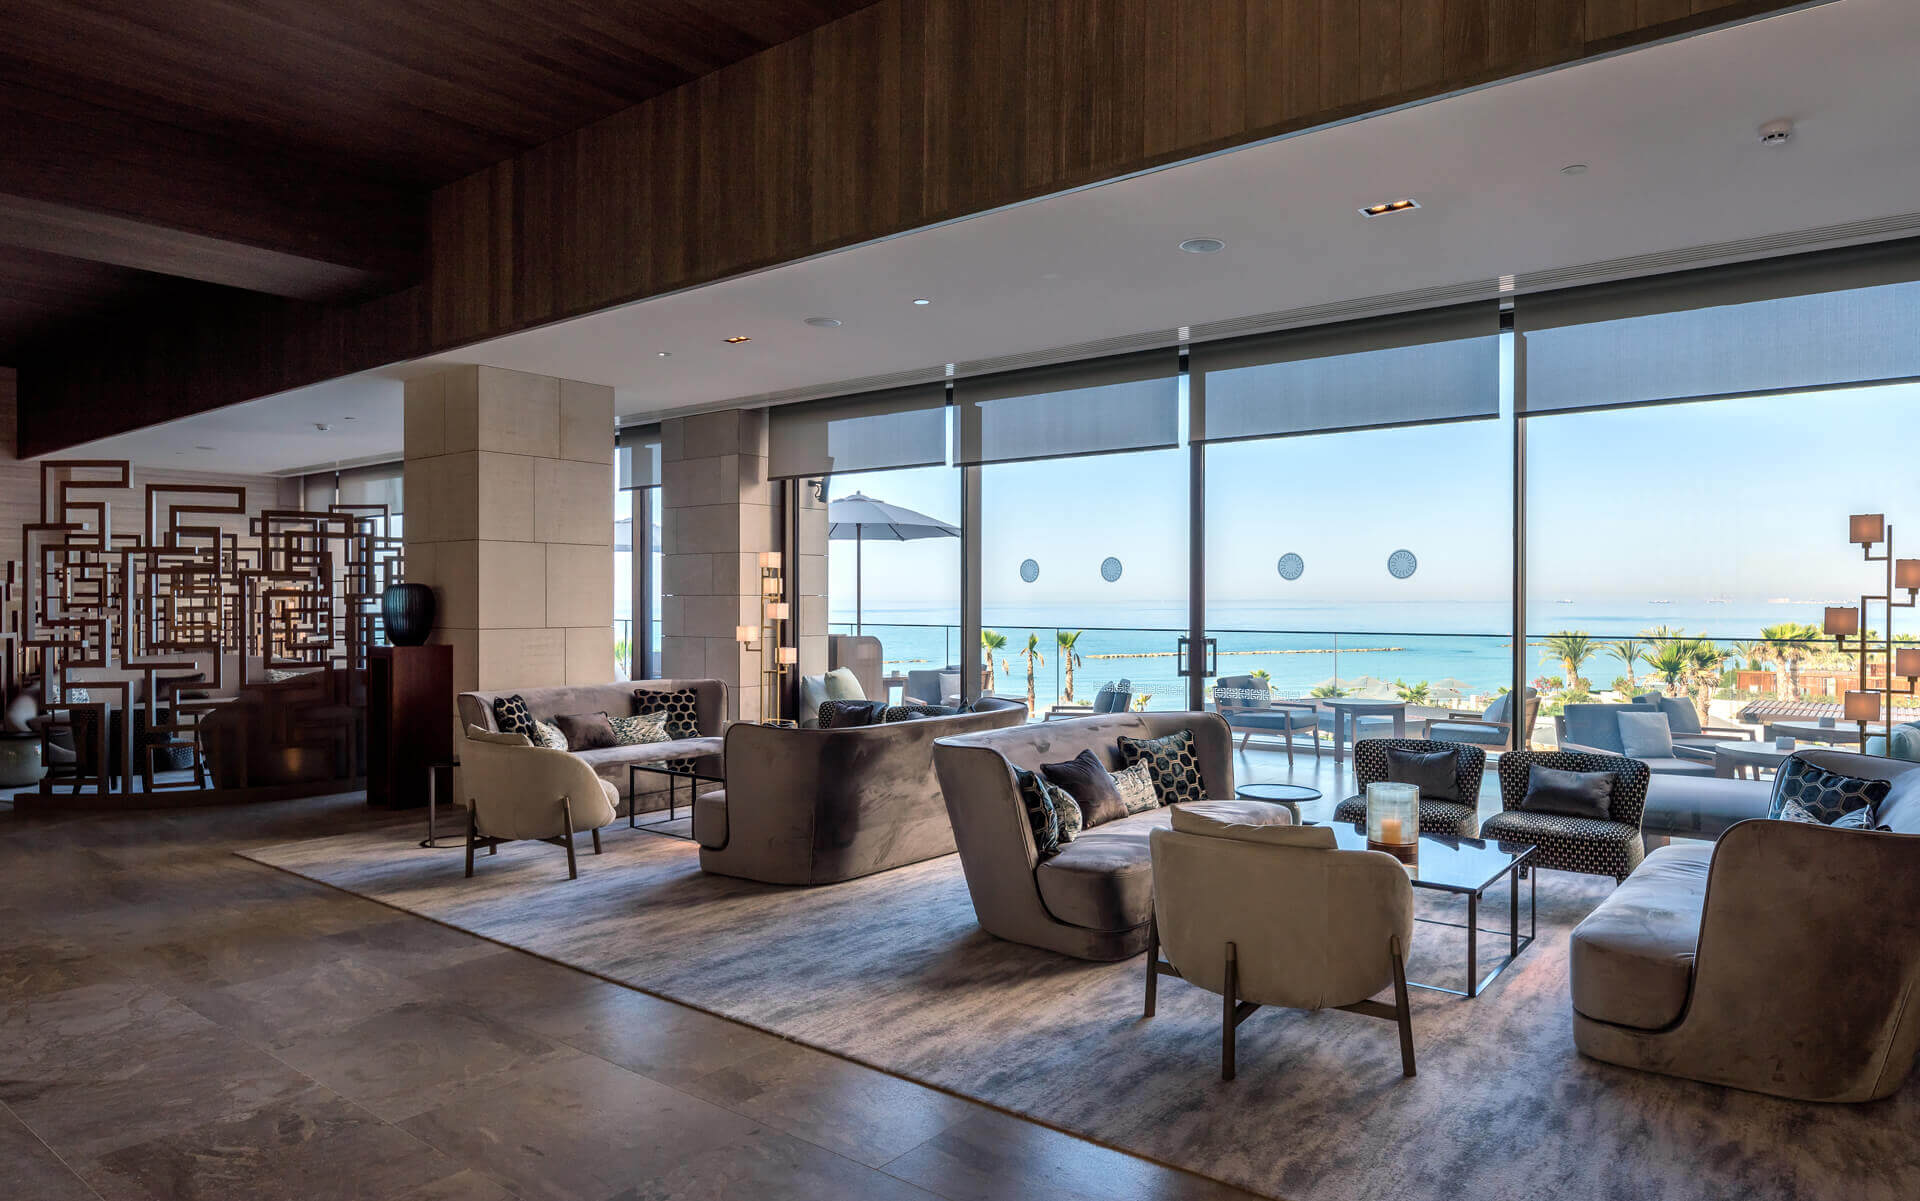 The-Lobby-Bar-Lounge-area-with-Seaview-1920×1201